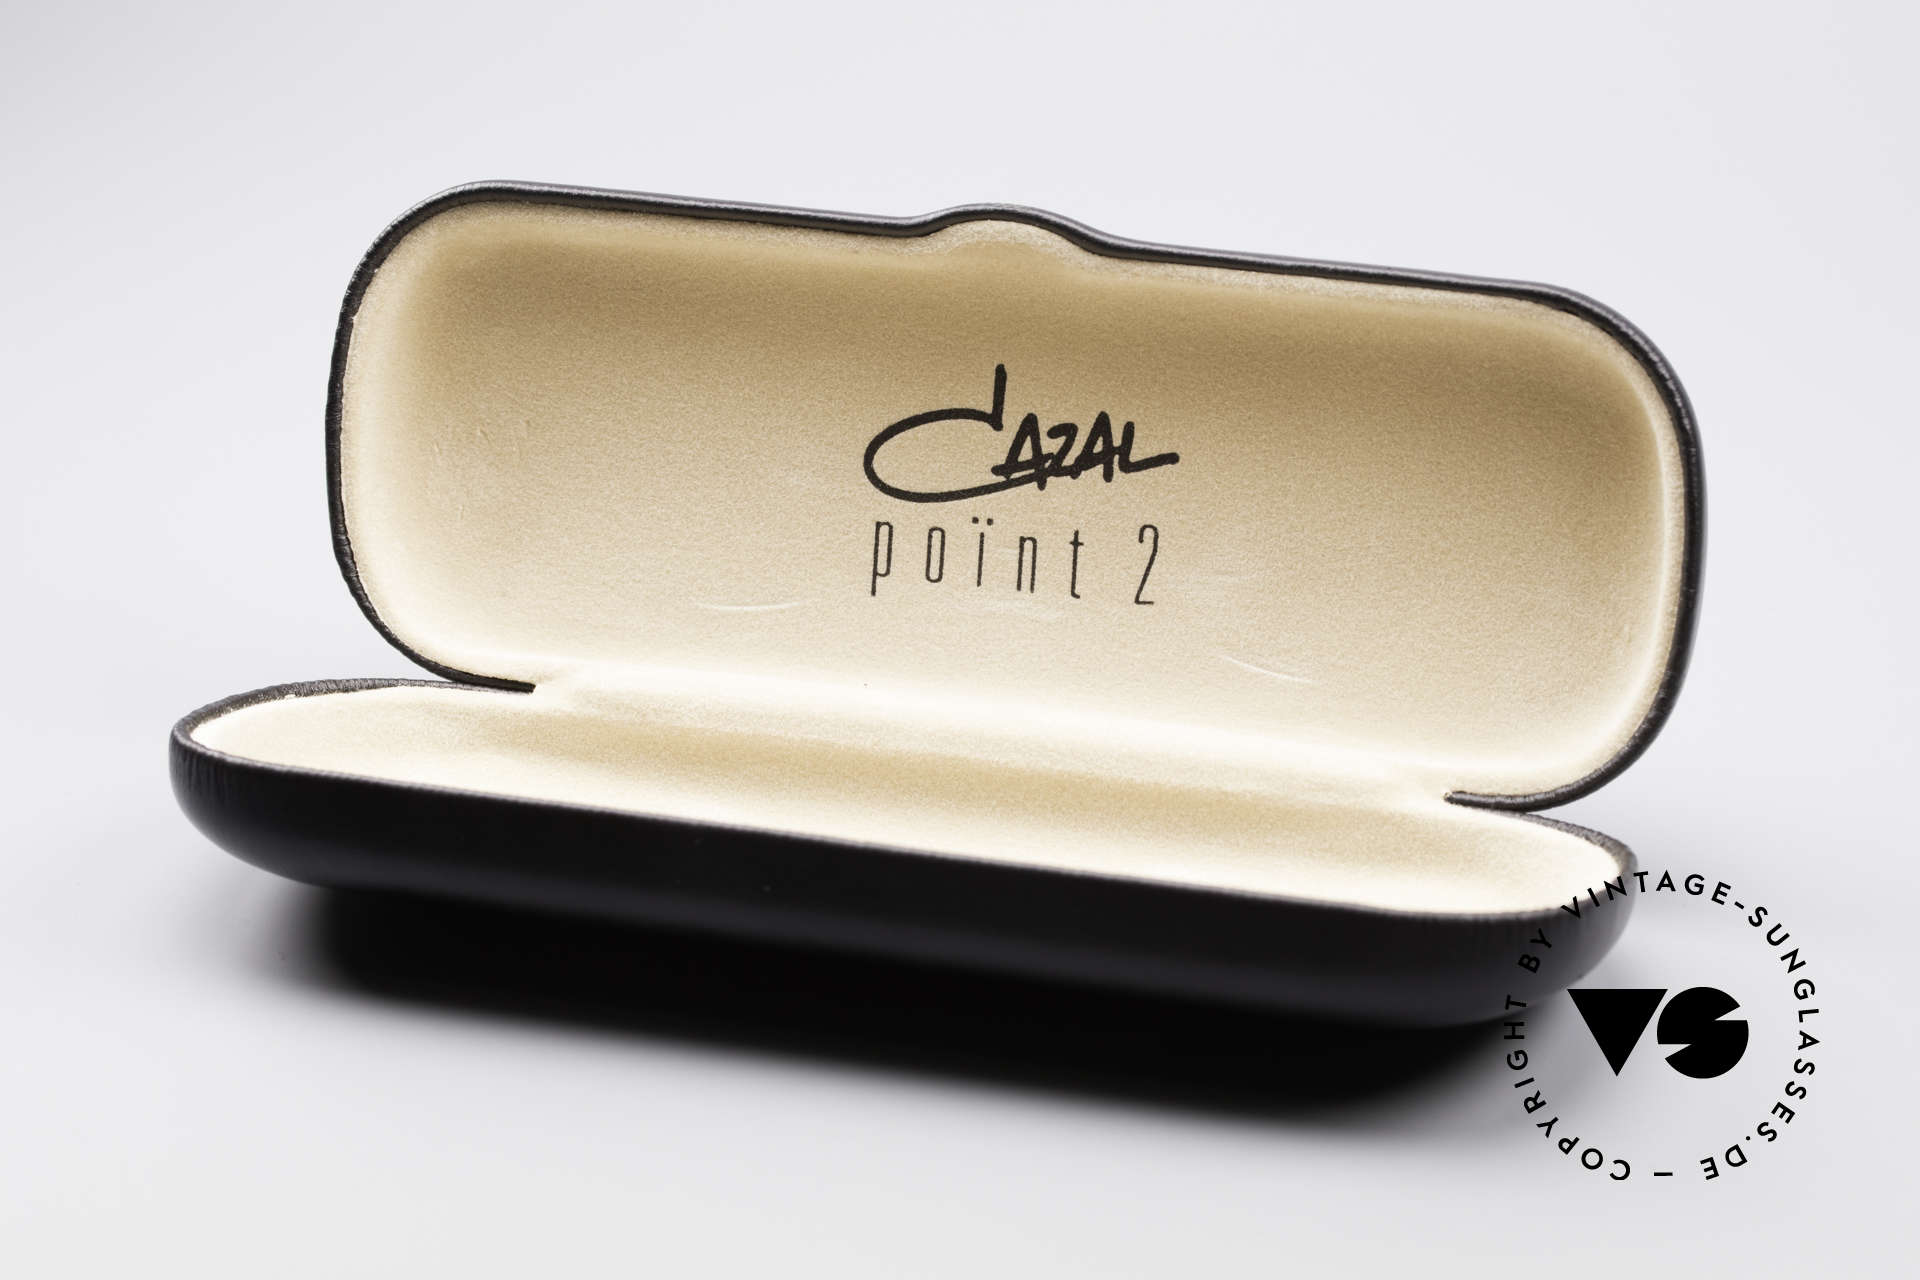 Cazal 1114 - Point 2 Oval Vintage Eyeglass Frame, NO retro eyeglasses, but an authentic old 90's original, Made for Men and Women